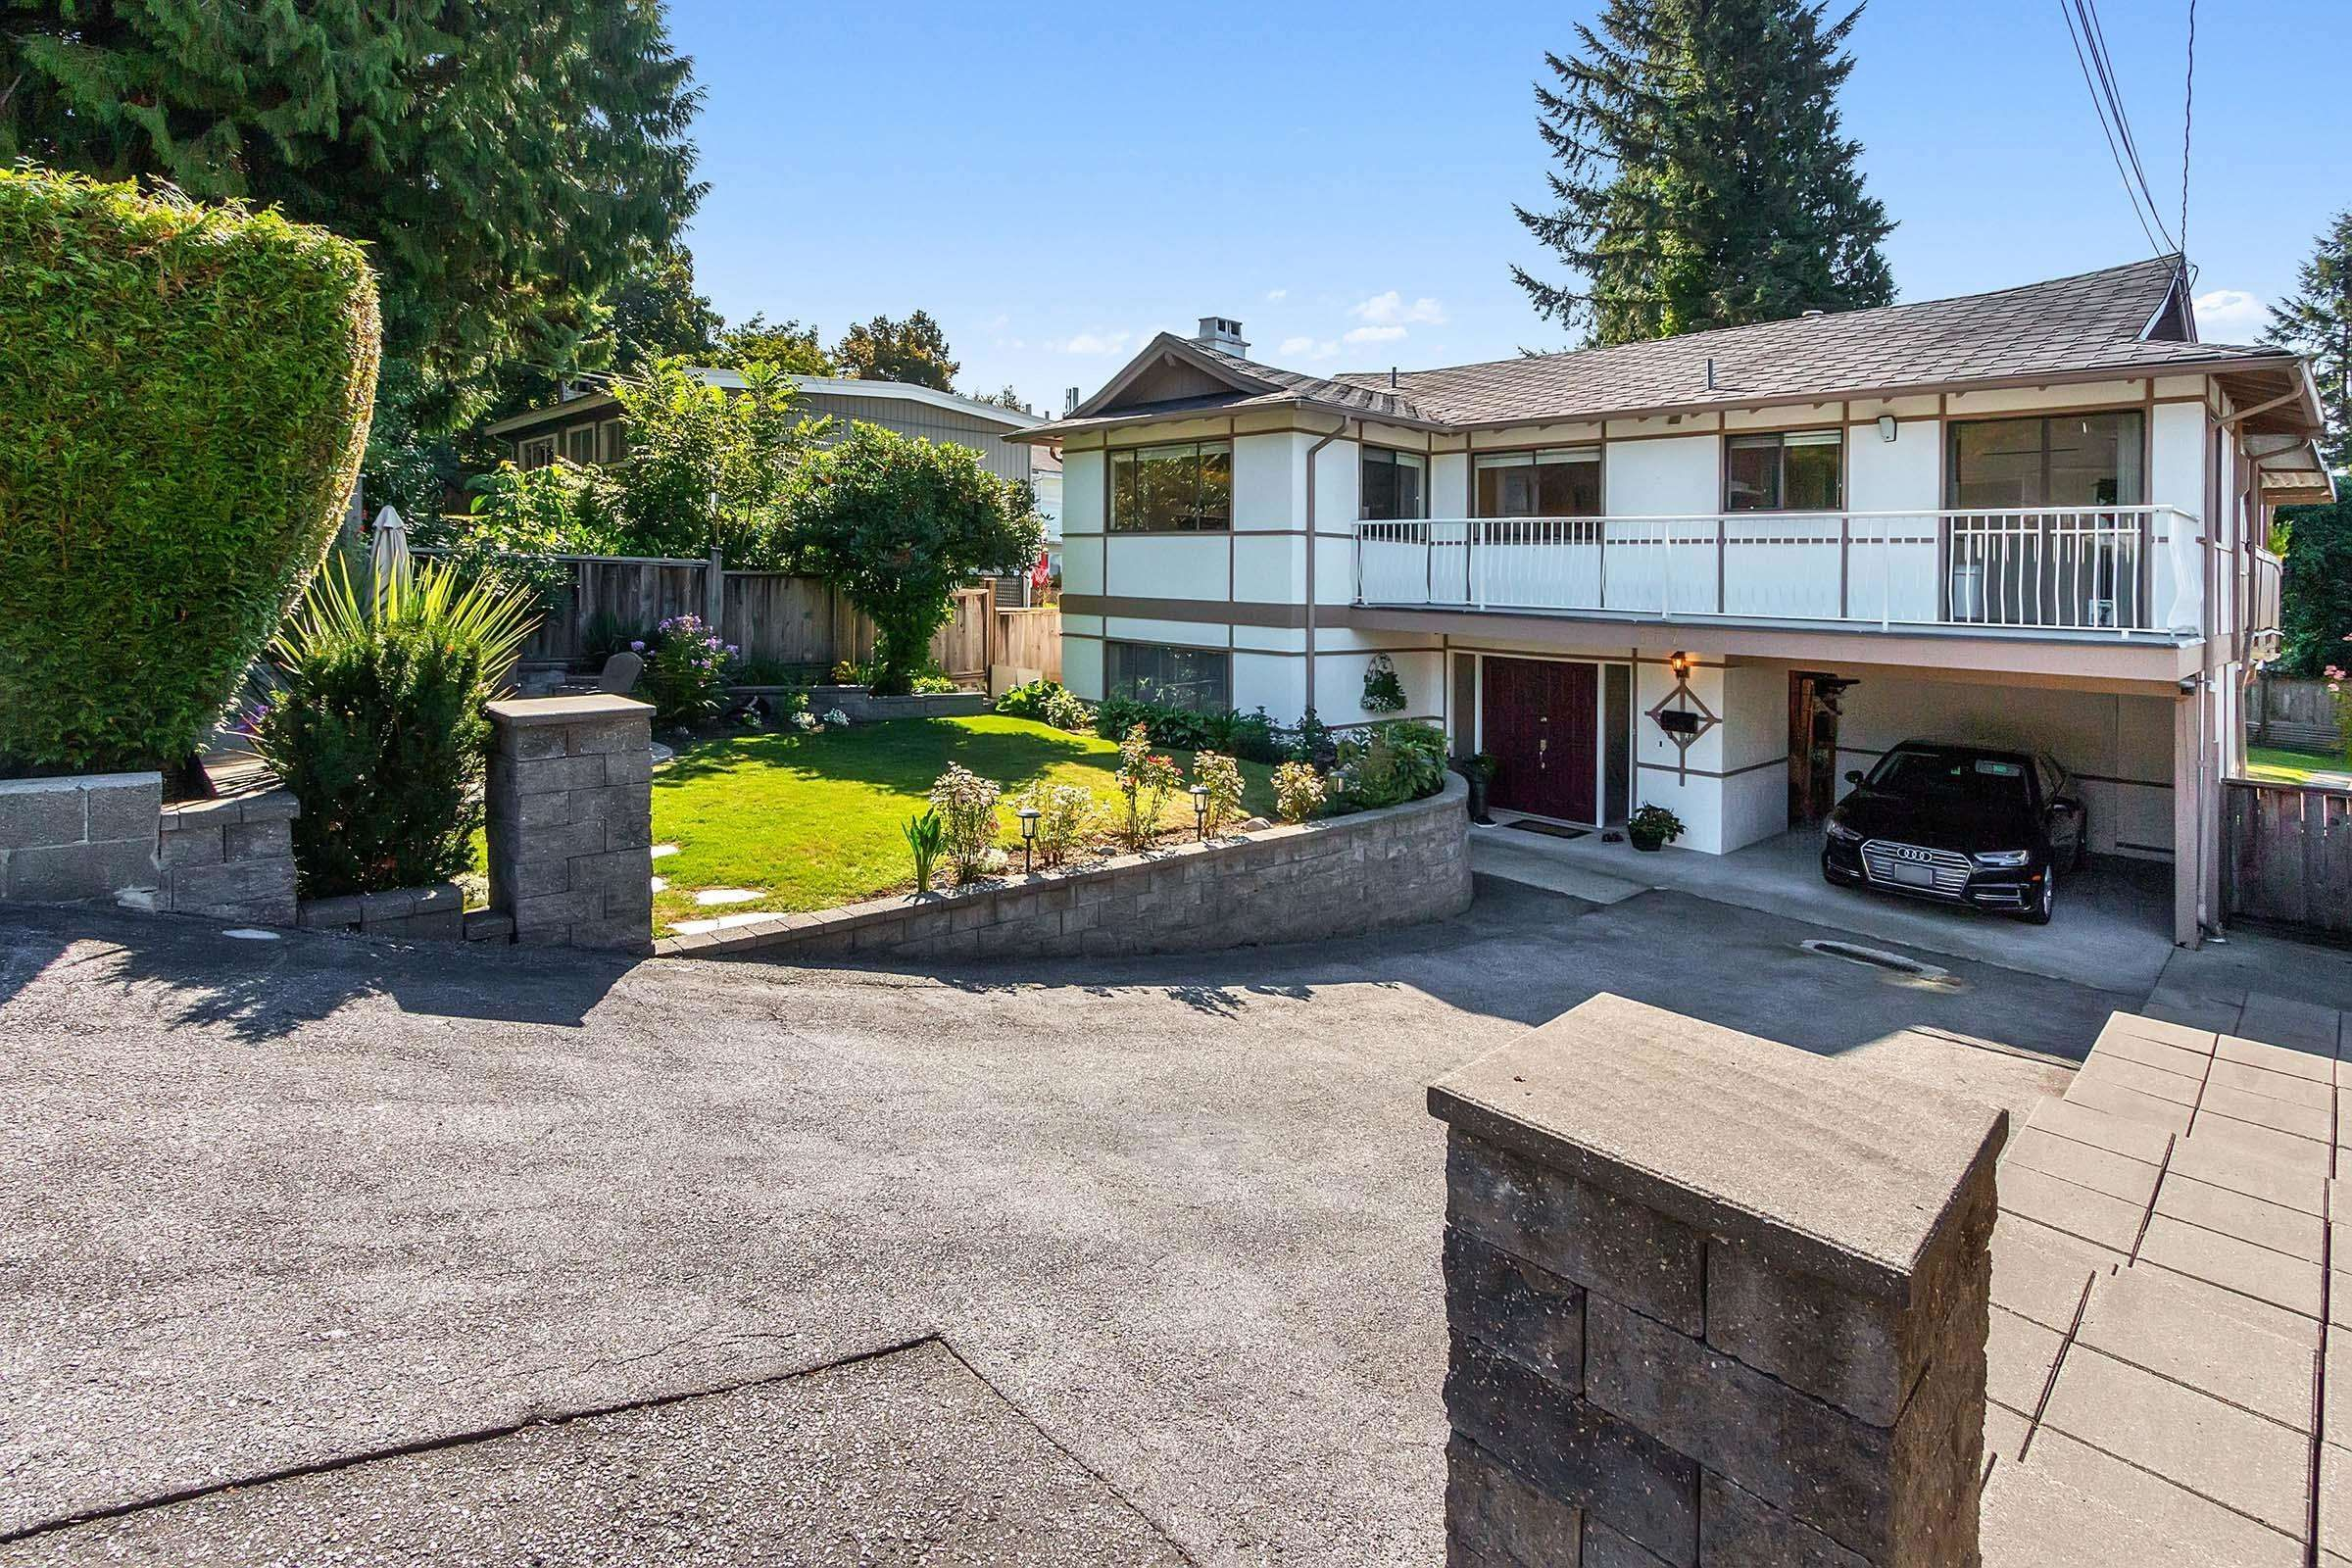 Main Photo: 117 W ST. JAMES Road in North Vancouver: Upper Lonsdale House for sale : MLS®# R2614107